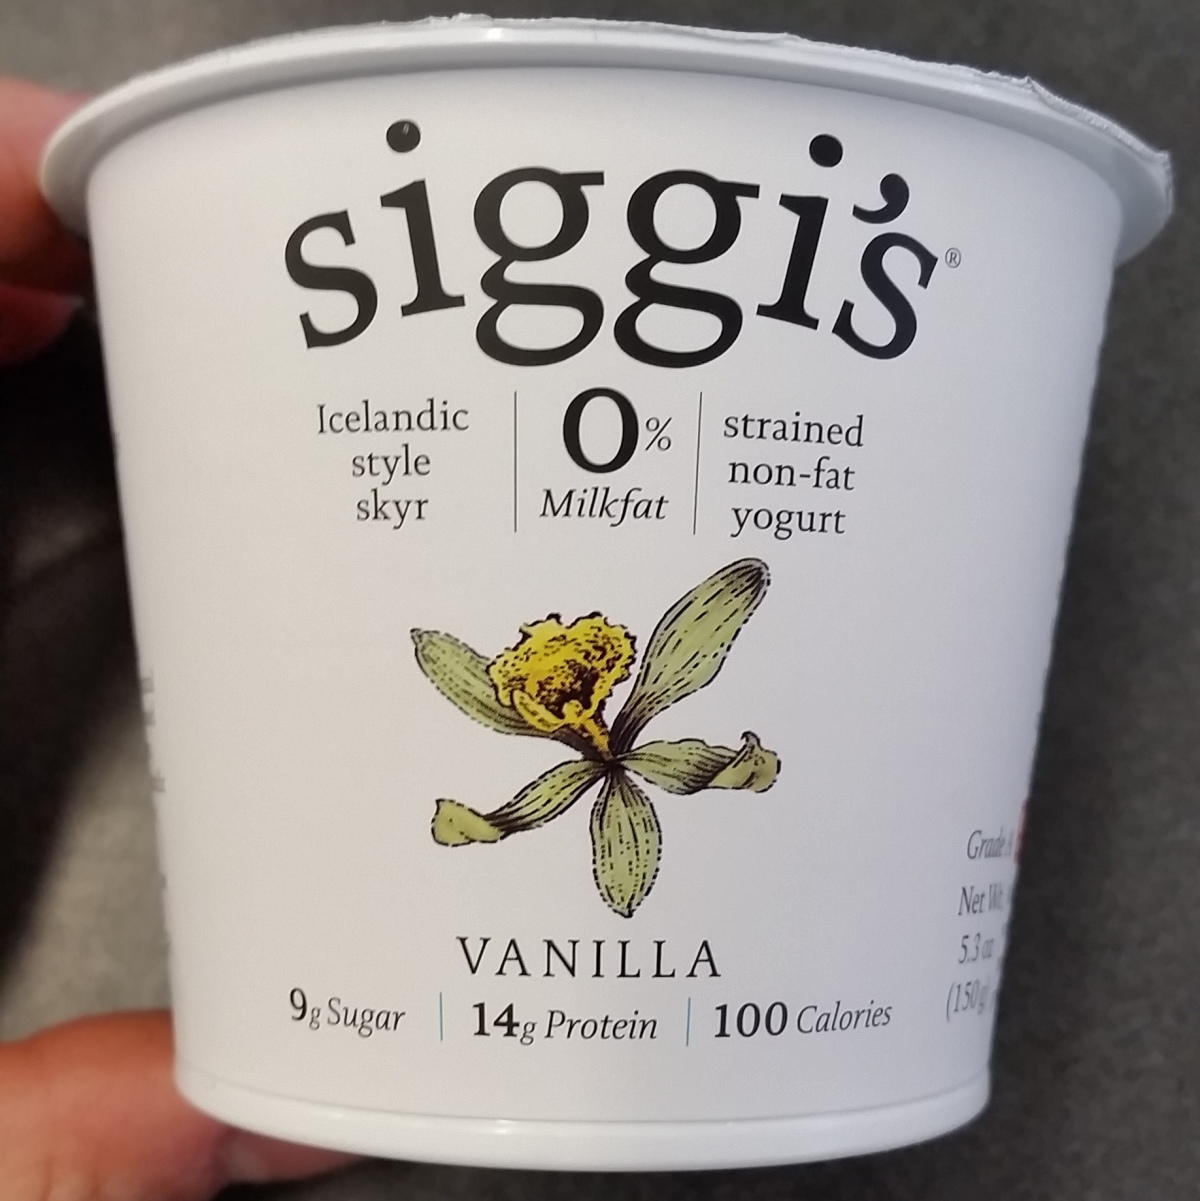 Healthy Food Review: Siggi's Icelandic Style Skyr